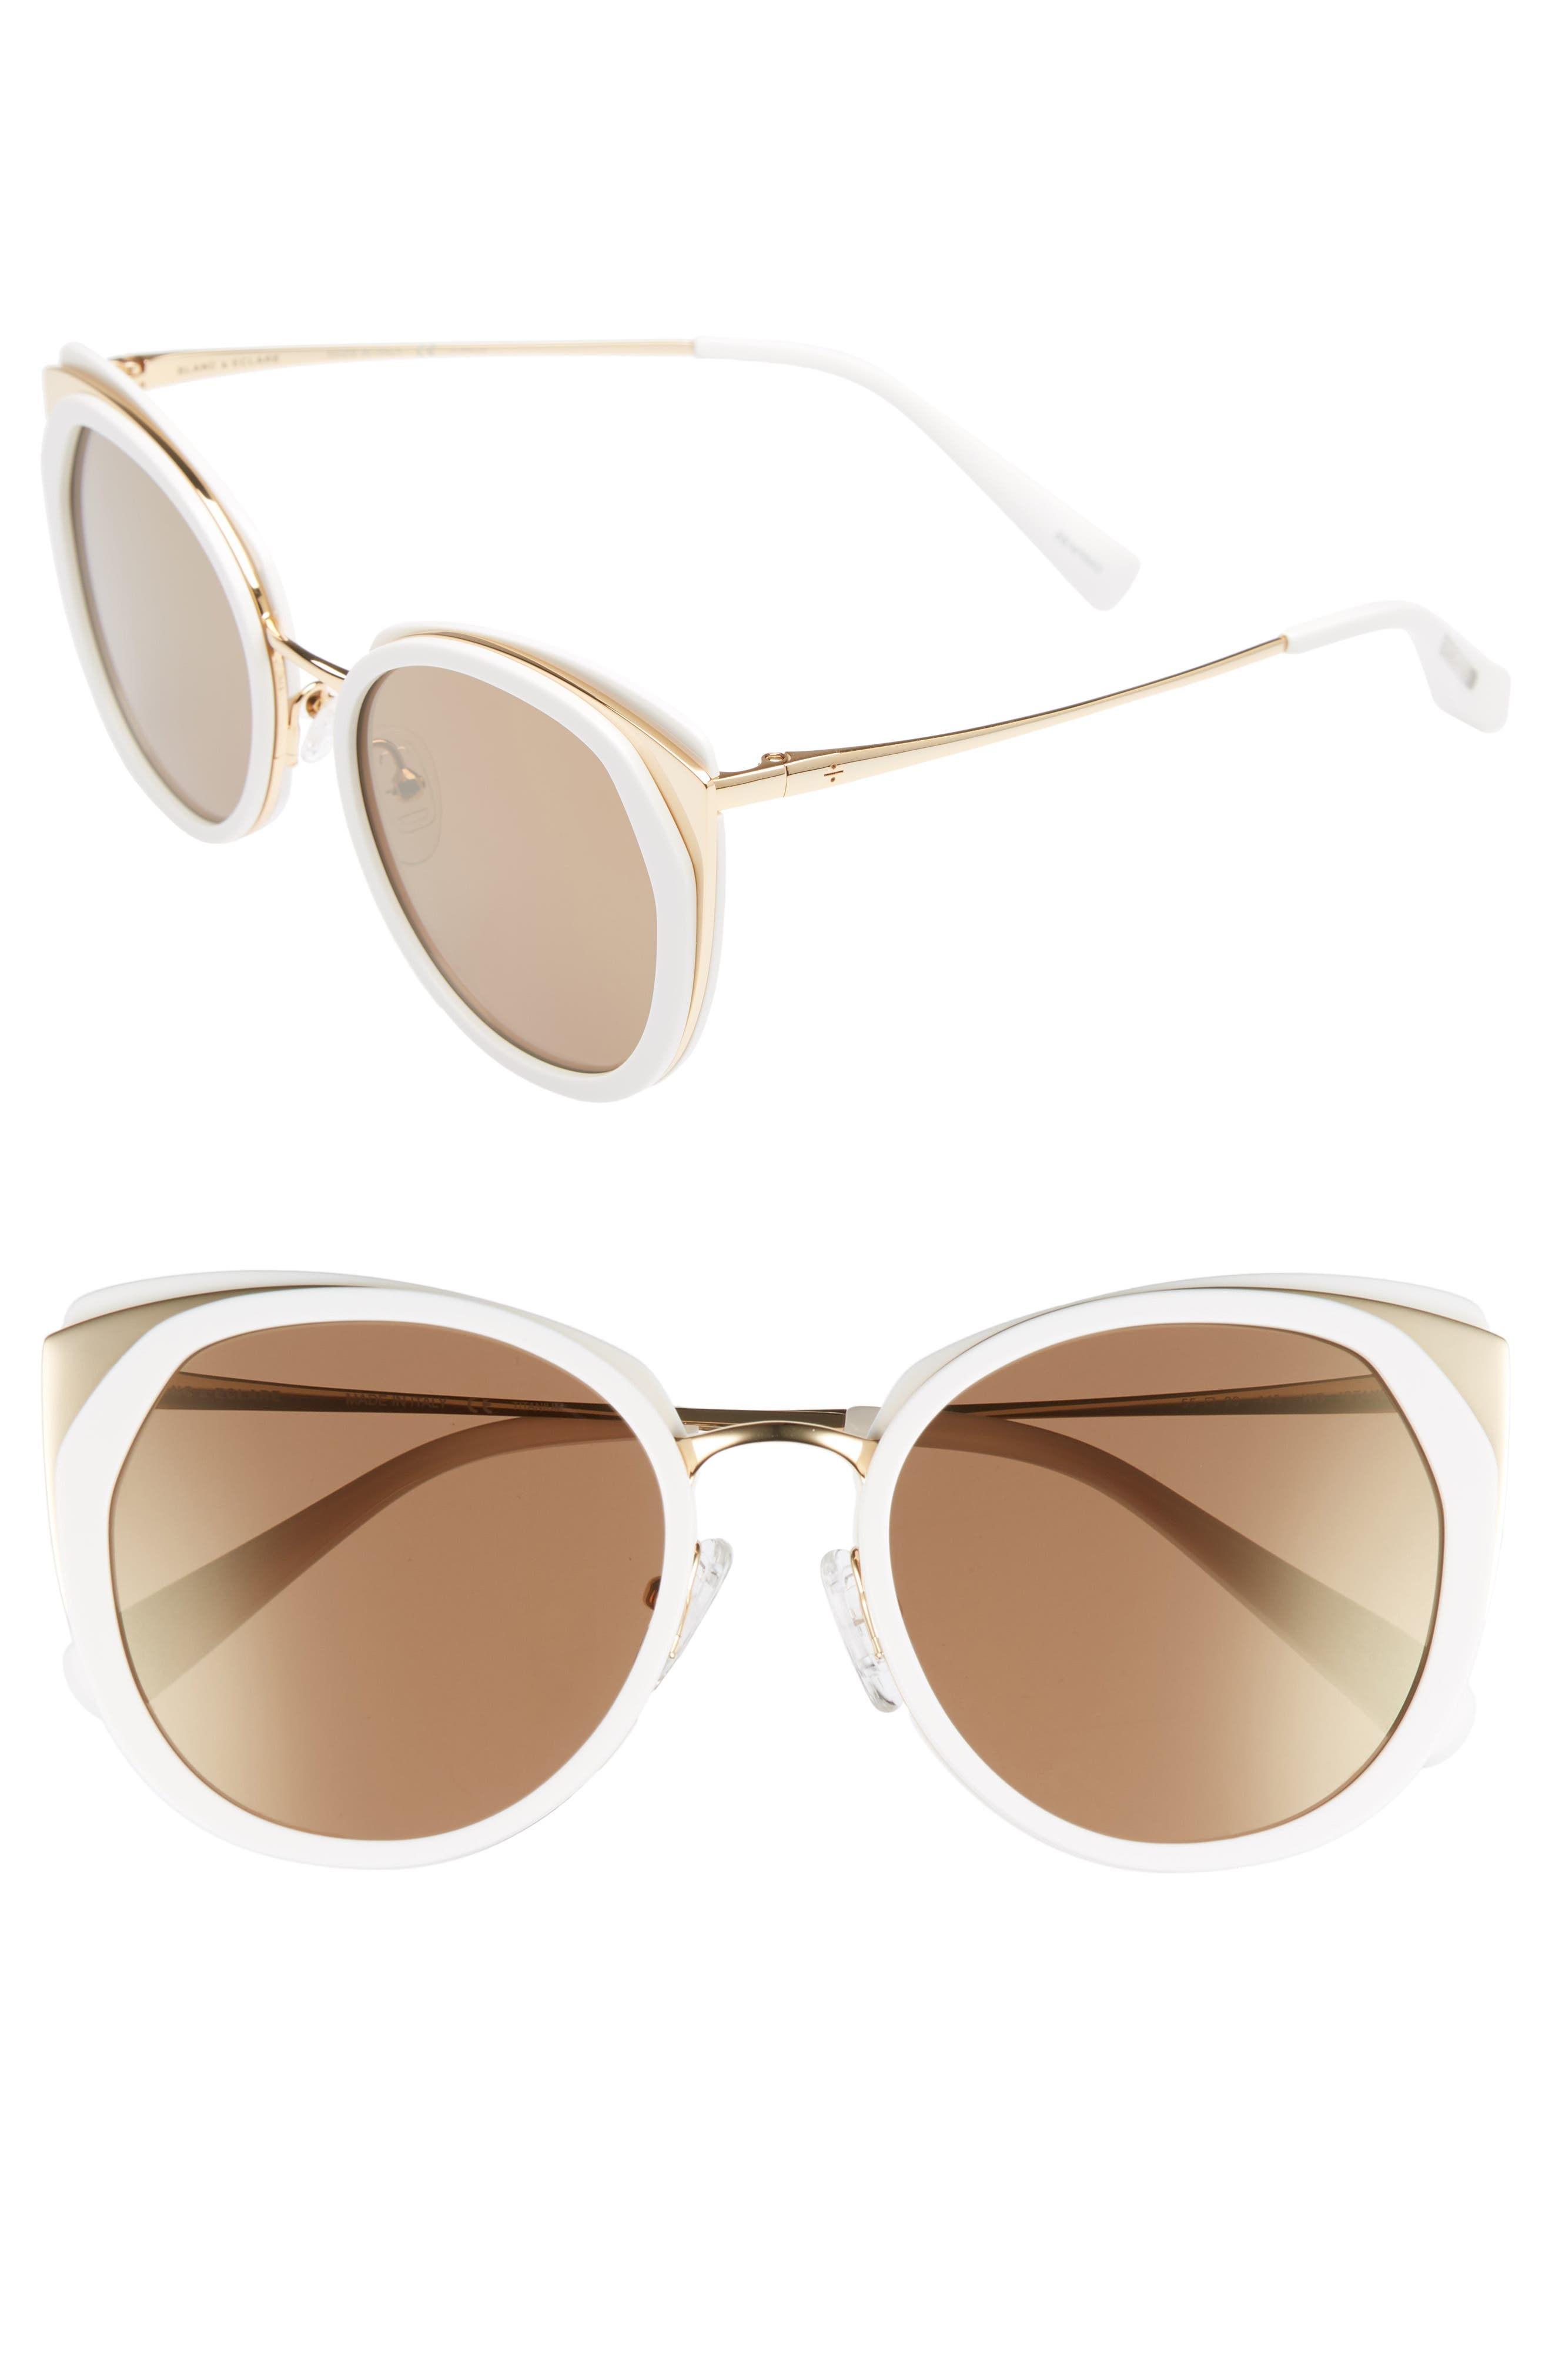 BLANC & ECLARE Istanbul 55mm Polarized Cat Eye Sunglasses,                         Main,                         color, Snow/ Gold/ Solid Gold Mirror